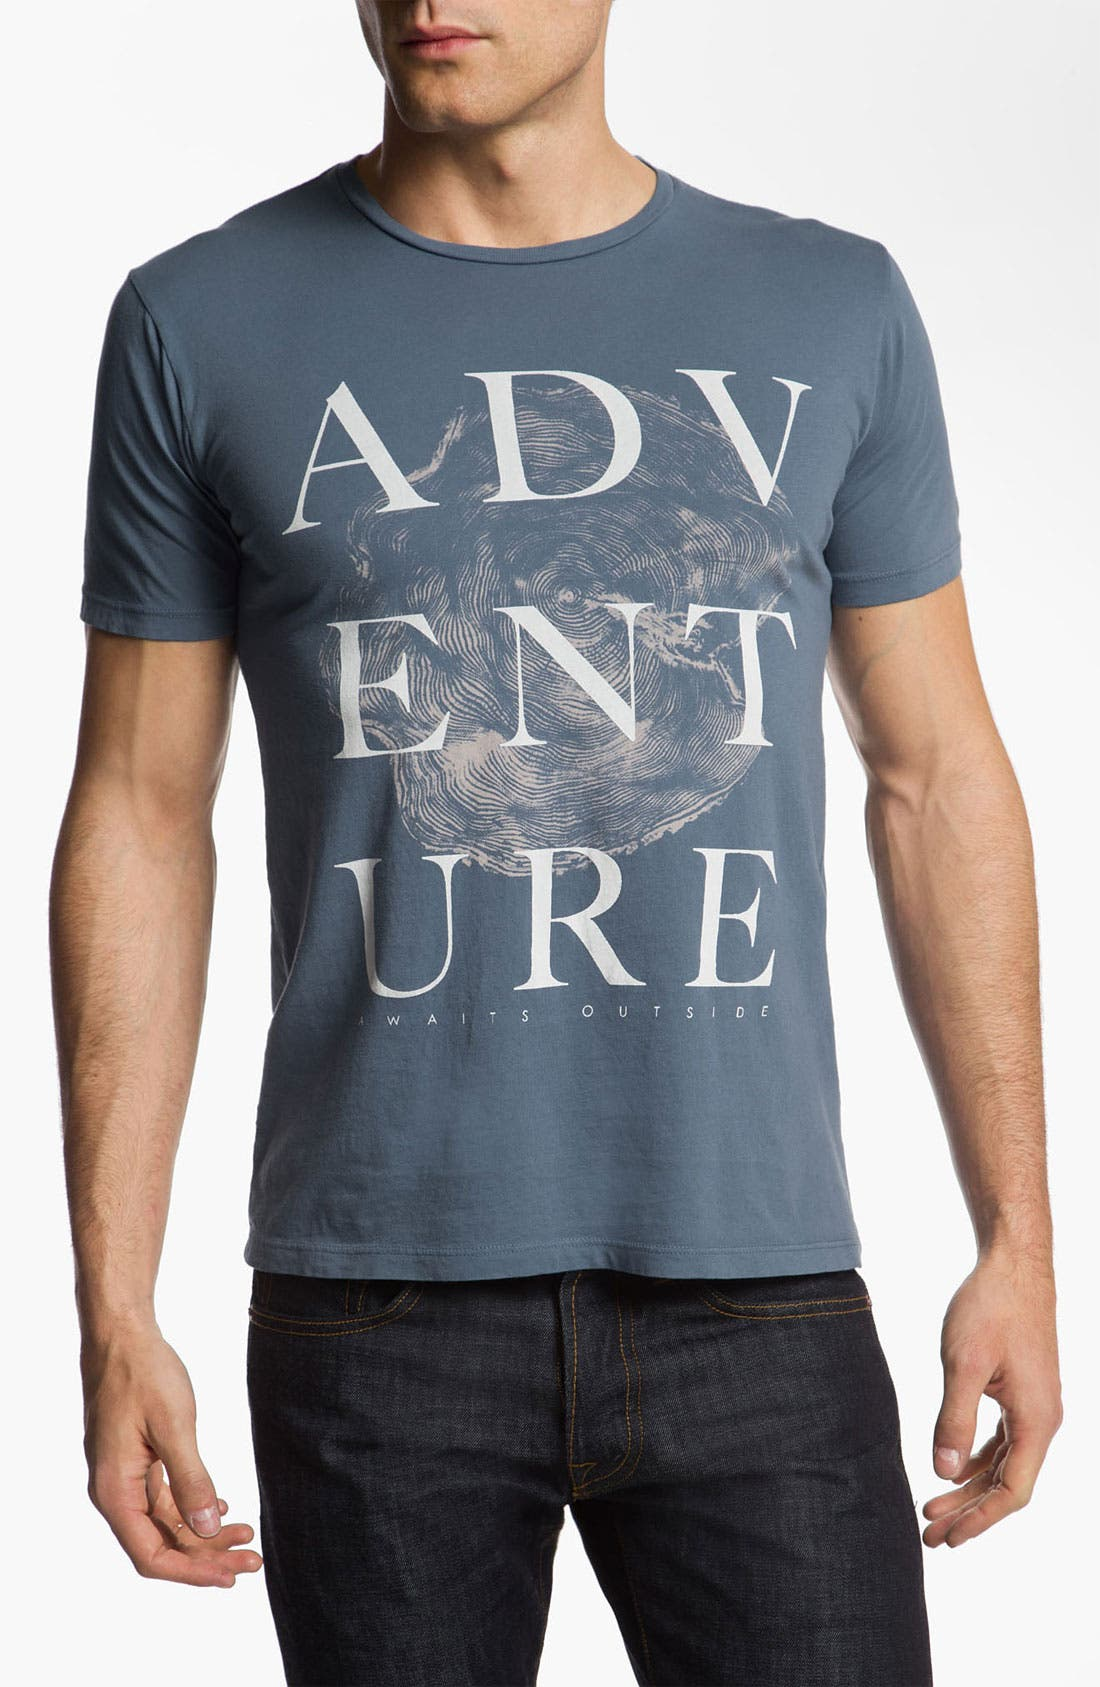 Alternate Image 1 Selected - Altru 'Adventure' Graphic T-Shirt